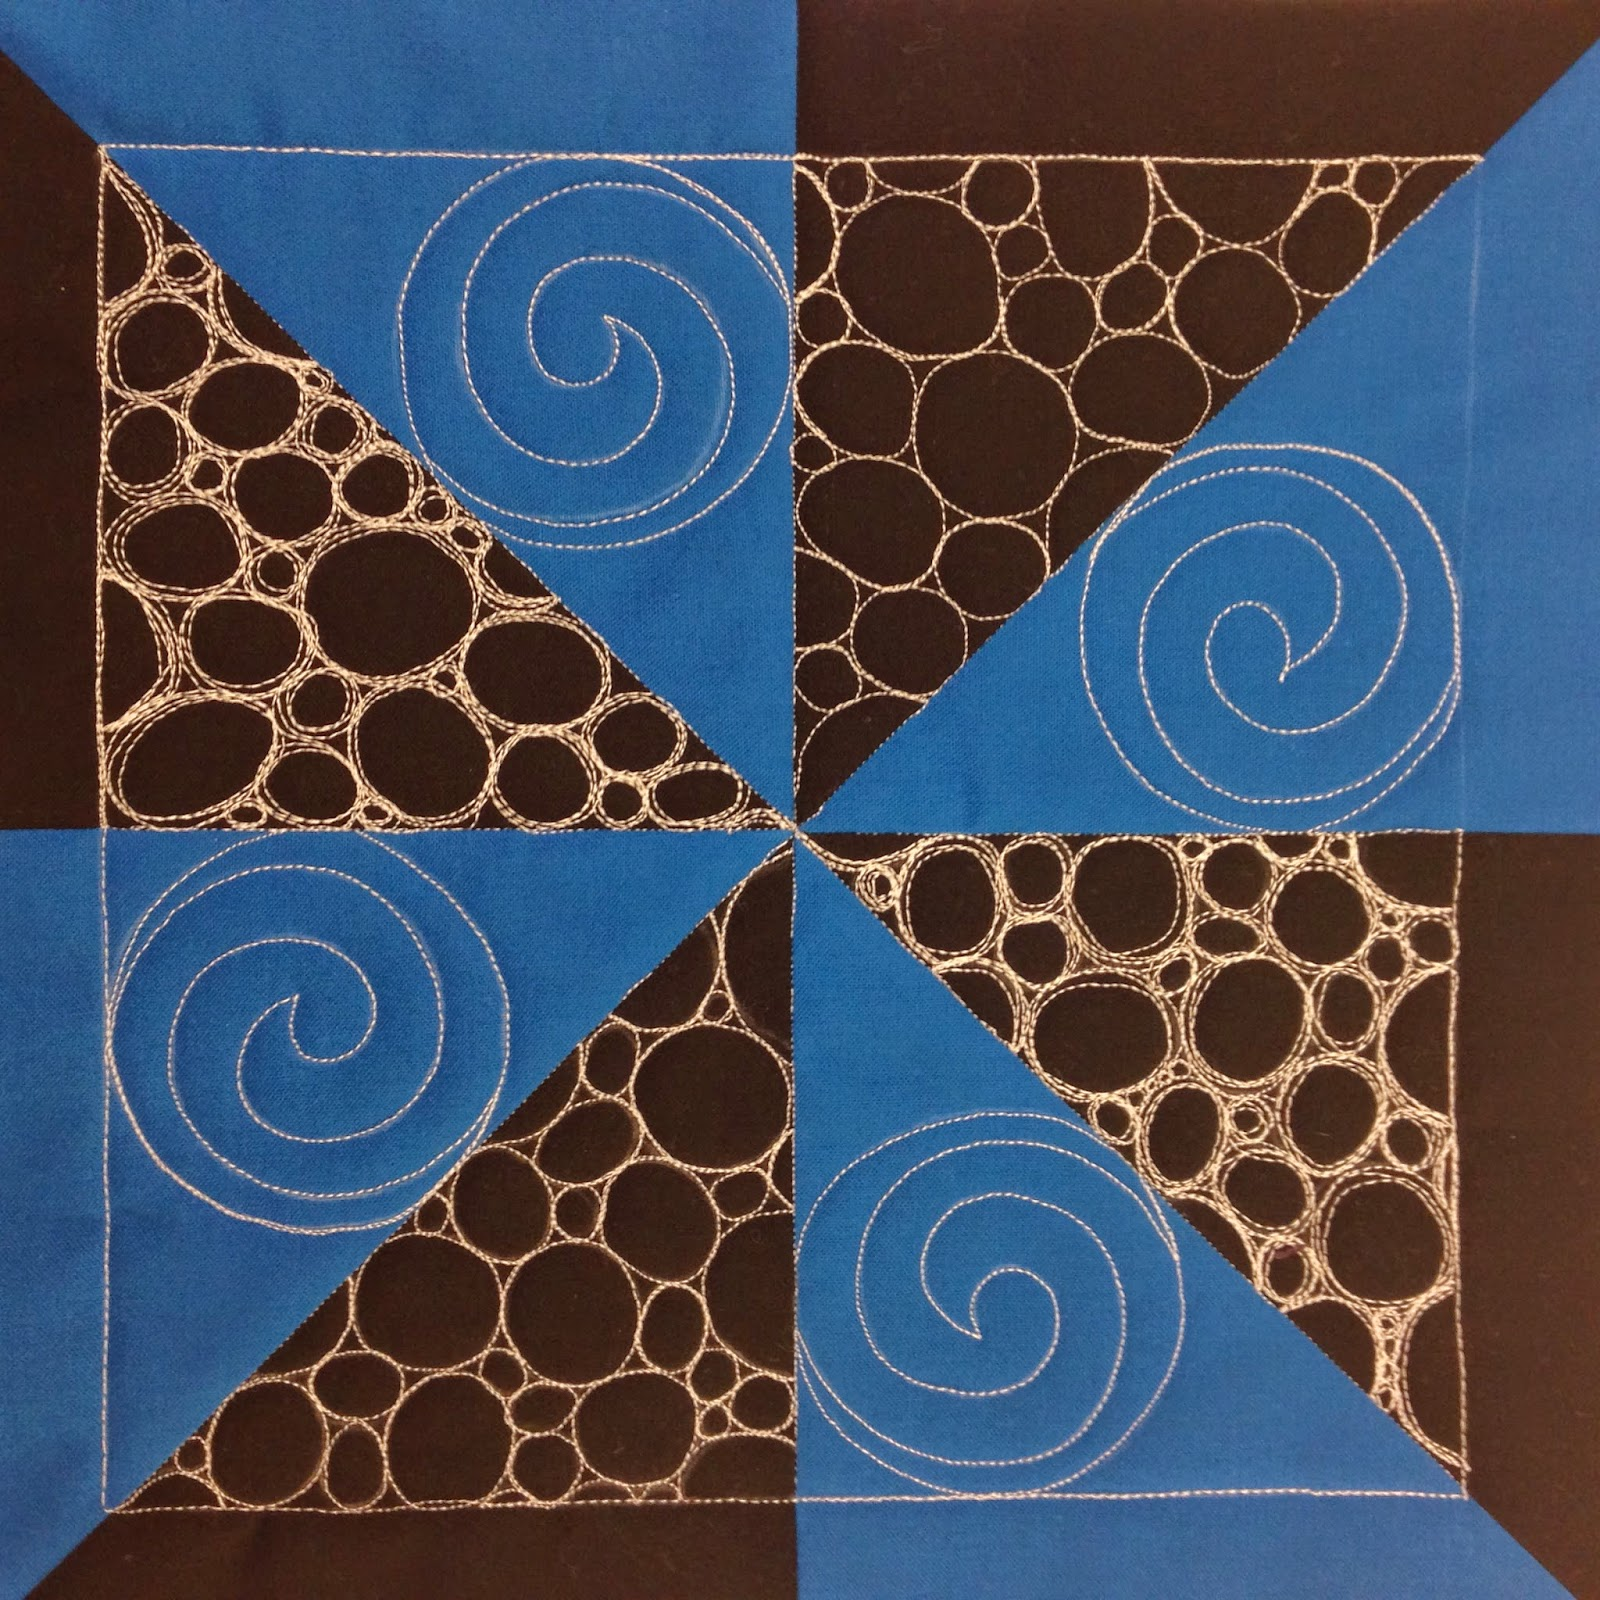 Free Motion Quilting Patterns For Blocks : The Free Motion Quilting Project: 24. Quilt a Pinwheel Block with Spirals and Pebbling